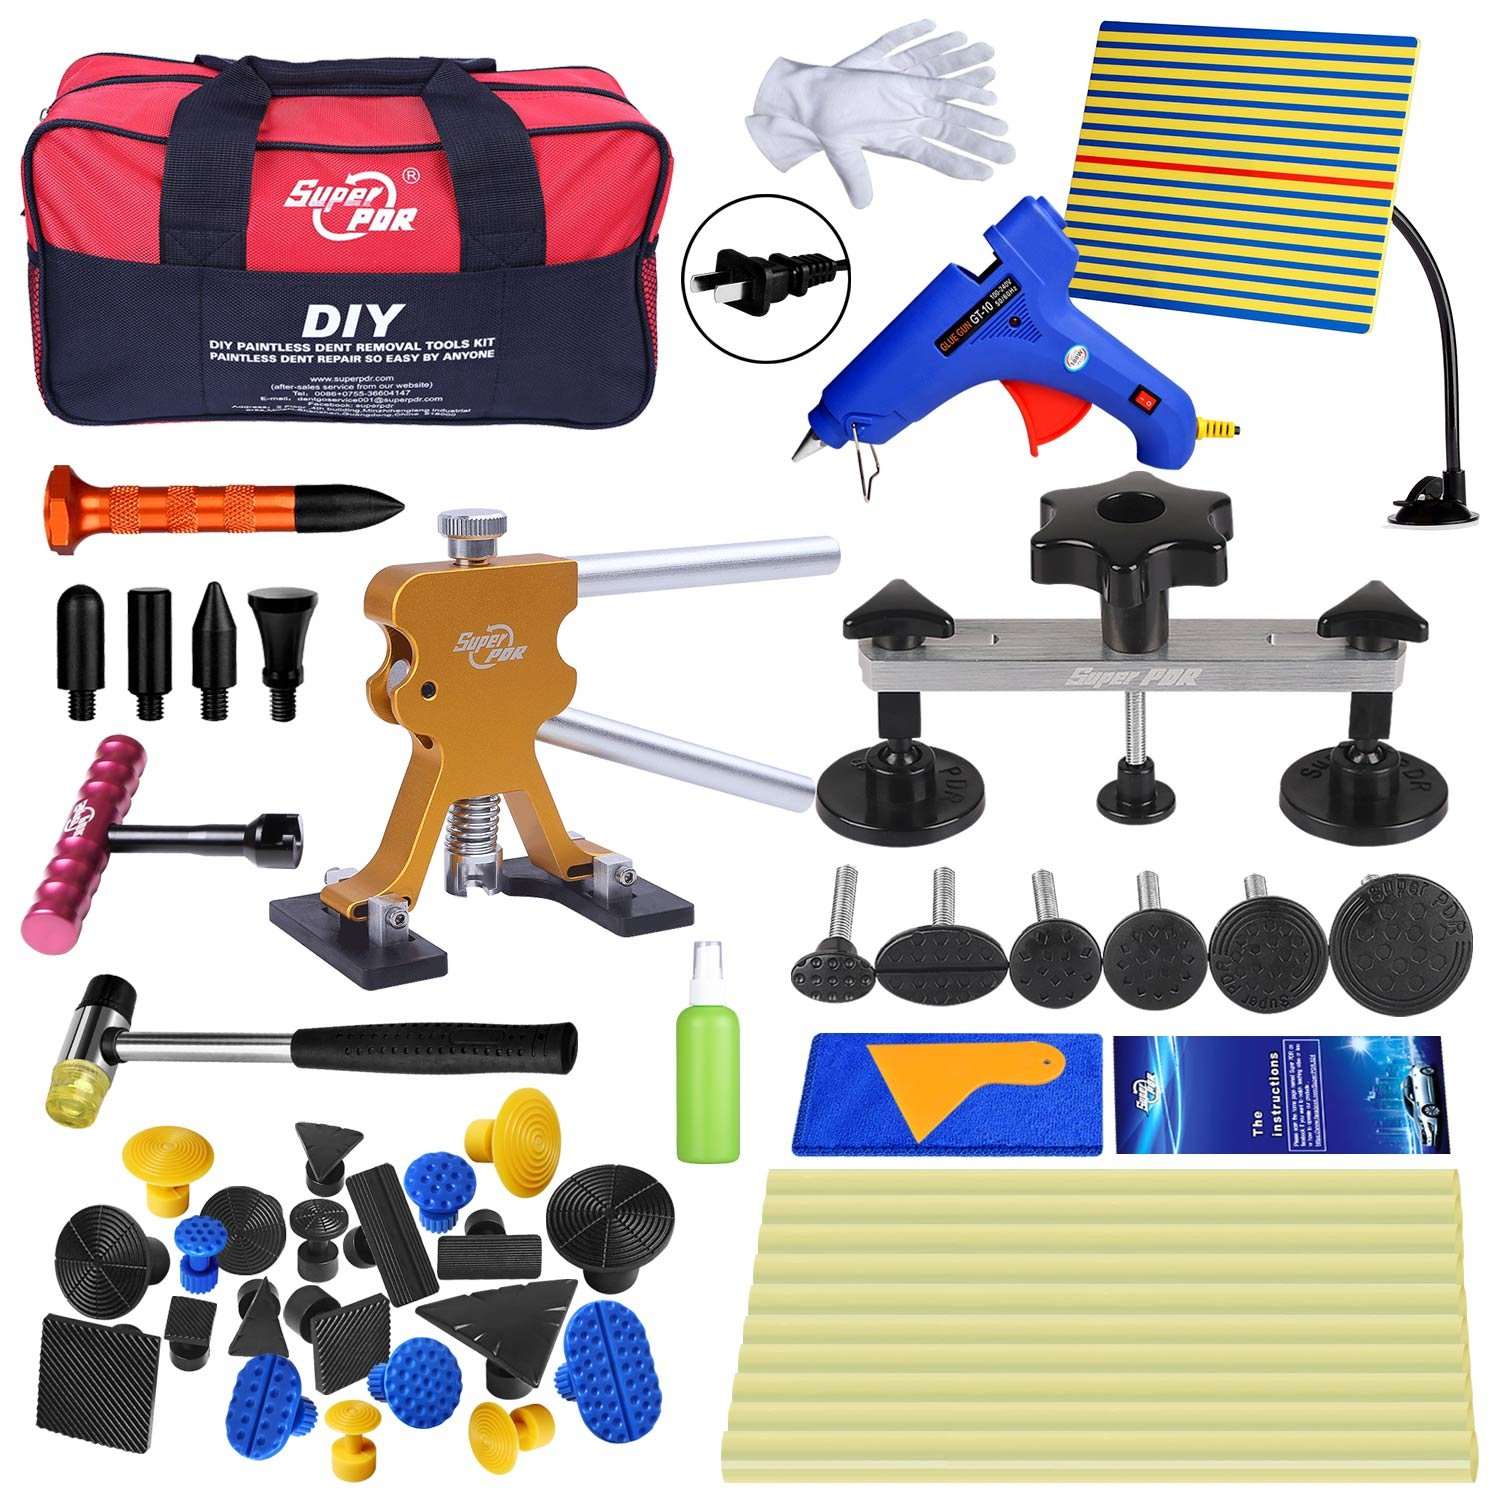 Super PDR Dent Puller Kit, PDR Tools 52Pcs Dent Remover for Car Body Dent Repair Kit